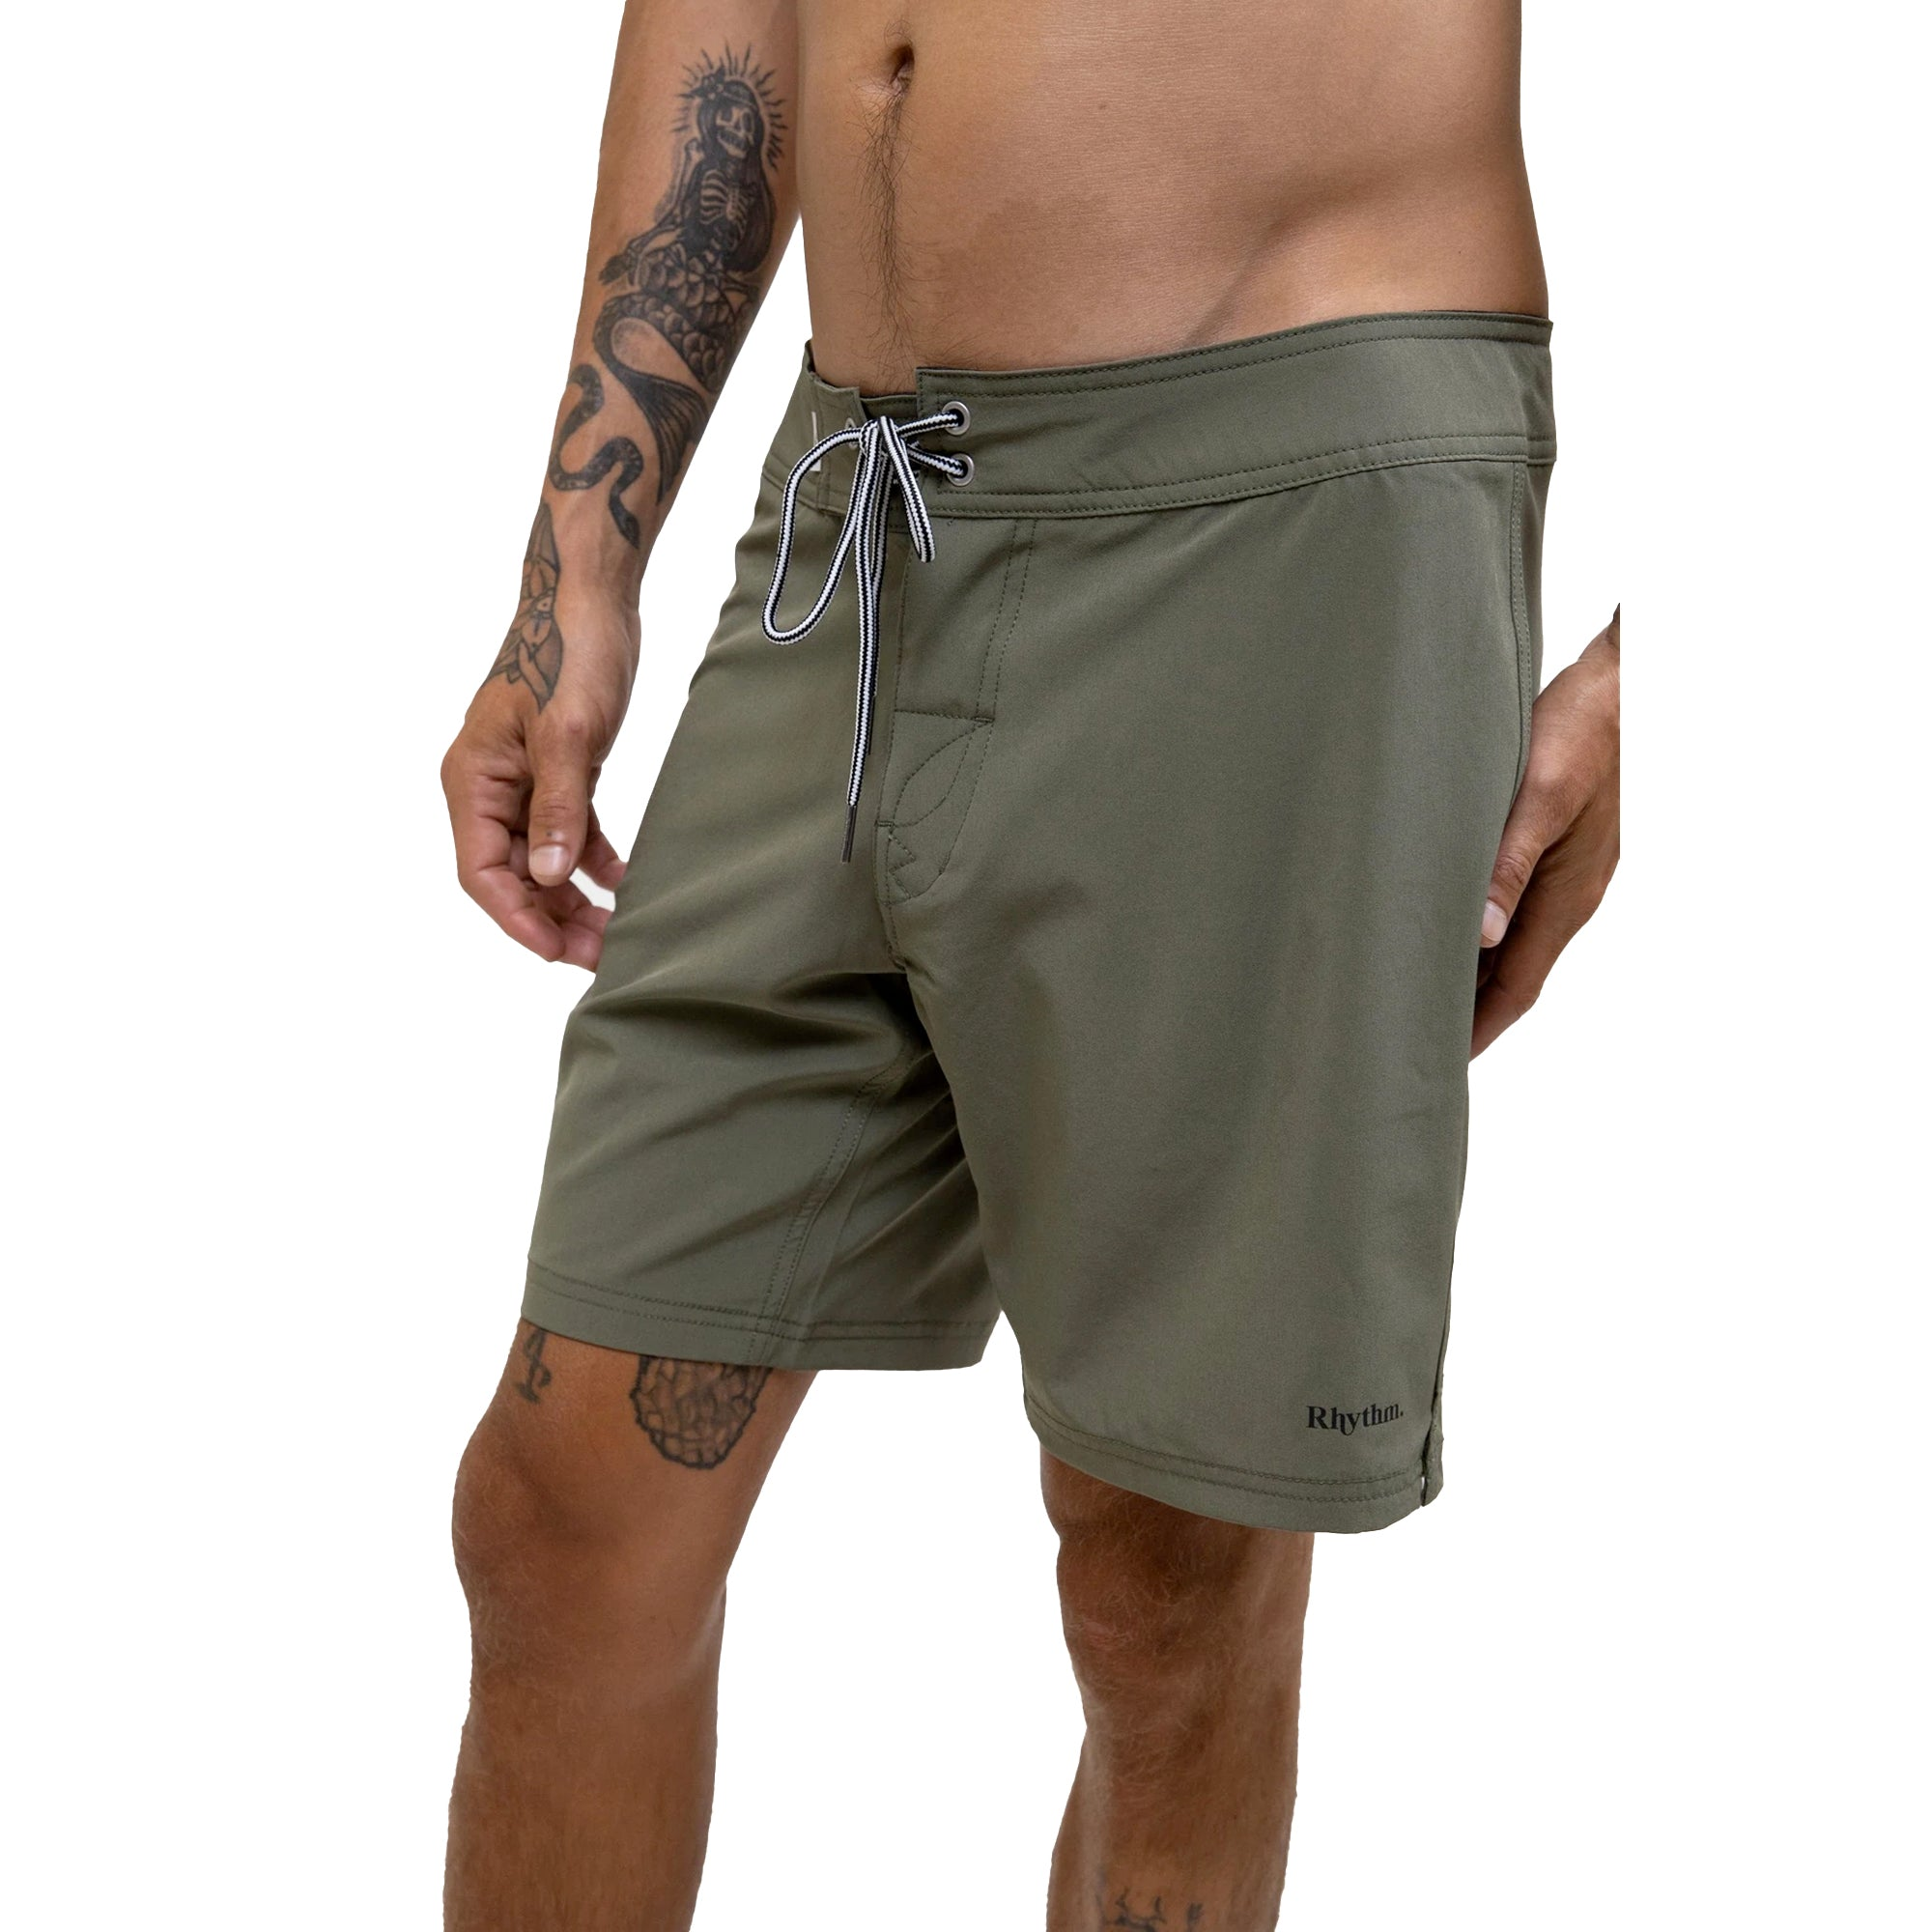 "Rhythm Classic Stretch 17"" Men's Boardshorts"